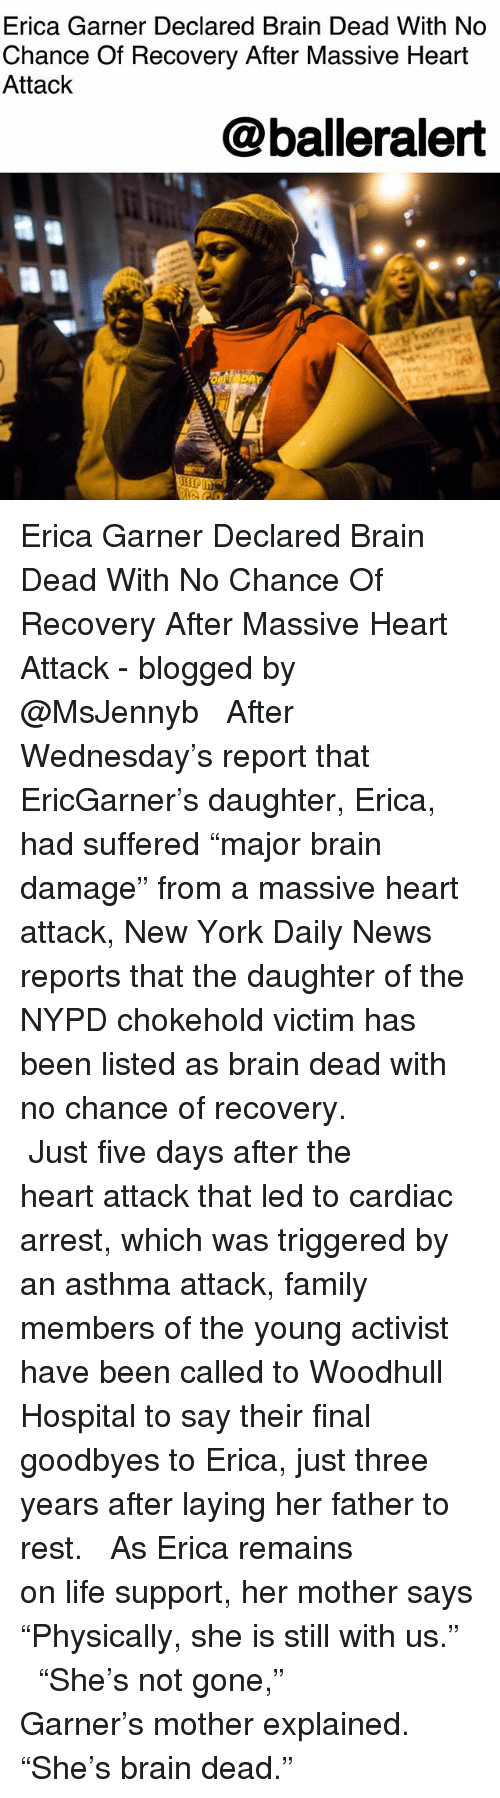 """Family, Life, and Memes: Erica Garner Declared Brain Dead With No  Chance Of Recovery After Massive Heart  Attack  @balleralert Erica Garner Declared Brain Dead With No Chance Of Recovery After Massive Heart Attack - blogged by @MsJennyb ⠀⠀⠀⠀⠀⠀⠀ ⠀⠀⠀⠀⠀⠀⠀ After Wednesday's report that EricGarner's daughter, Erica, had suffered """"major brain damage"""" from a massive heart attack, New York Daily News reports that the daughter of the NYPD chokehold victim has been listed as brain dead with no chance of recovery. ⠀⠀⠀⠀⠀⠀⠀ ⠀⠀⠀⠀⠀⠀⠀ Just five days after the heart attack that led to cardiac arrest, which was triggered by an asthma attack, family members of the young activist have been called to Woodhull Hospital to say their final goodbyes to Erica, just three years after laying her father to rest. ⠀⠀⠀⠀⠀⠀⠀ ⠀⠀⠀⠀⠀⠀⠀ As Erica remains on life support, her mother says """"Physically, she is still with us."""" ⠀⠀⠀⠀⠀⠀⠀ ⠀⠀⠀⠀⠀⠀⠀ """"She's not gone,"""" Garner's mother explained. """"She's brain dead."""""""